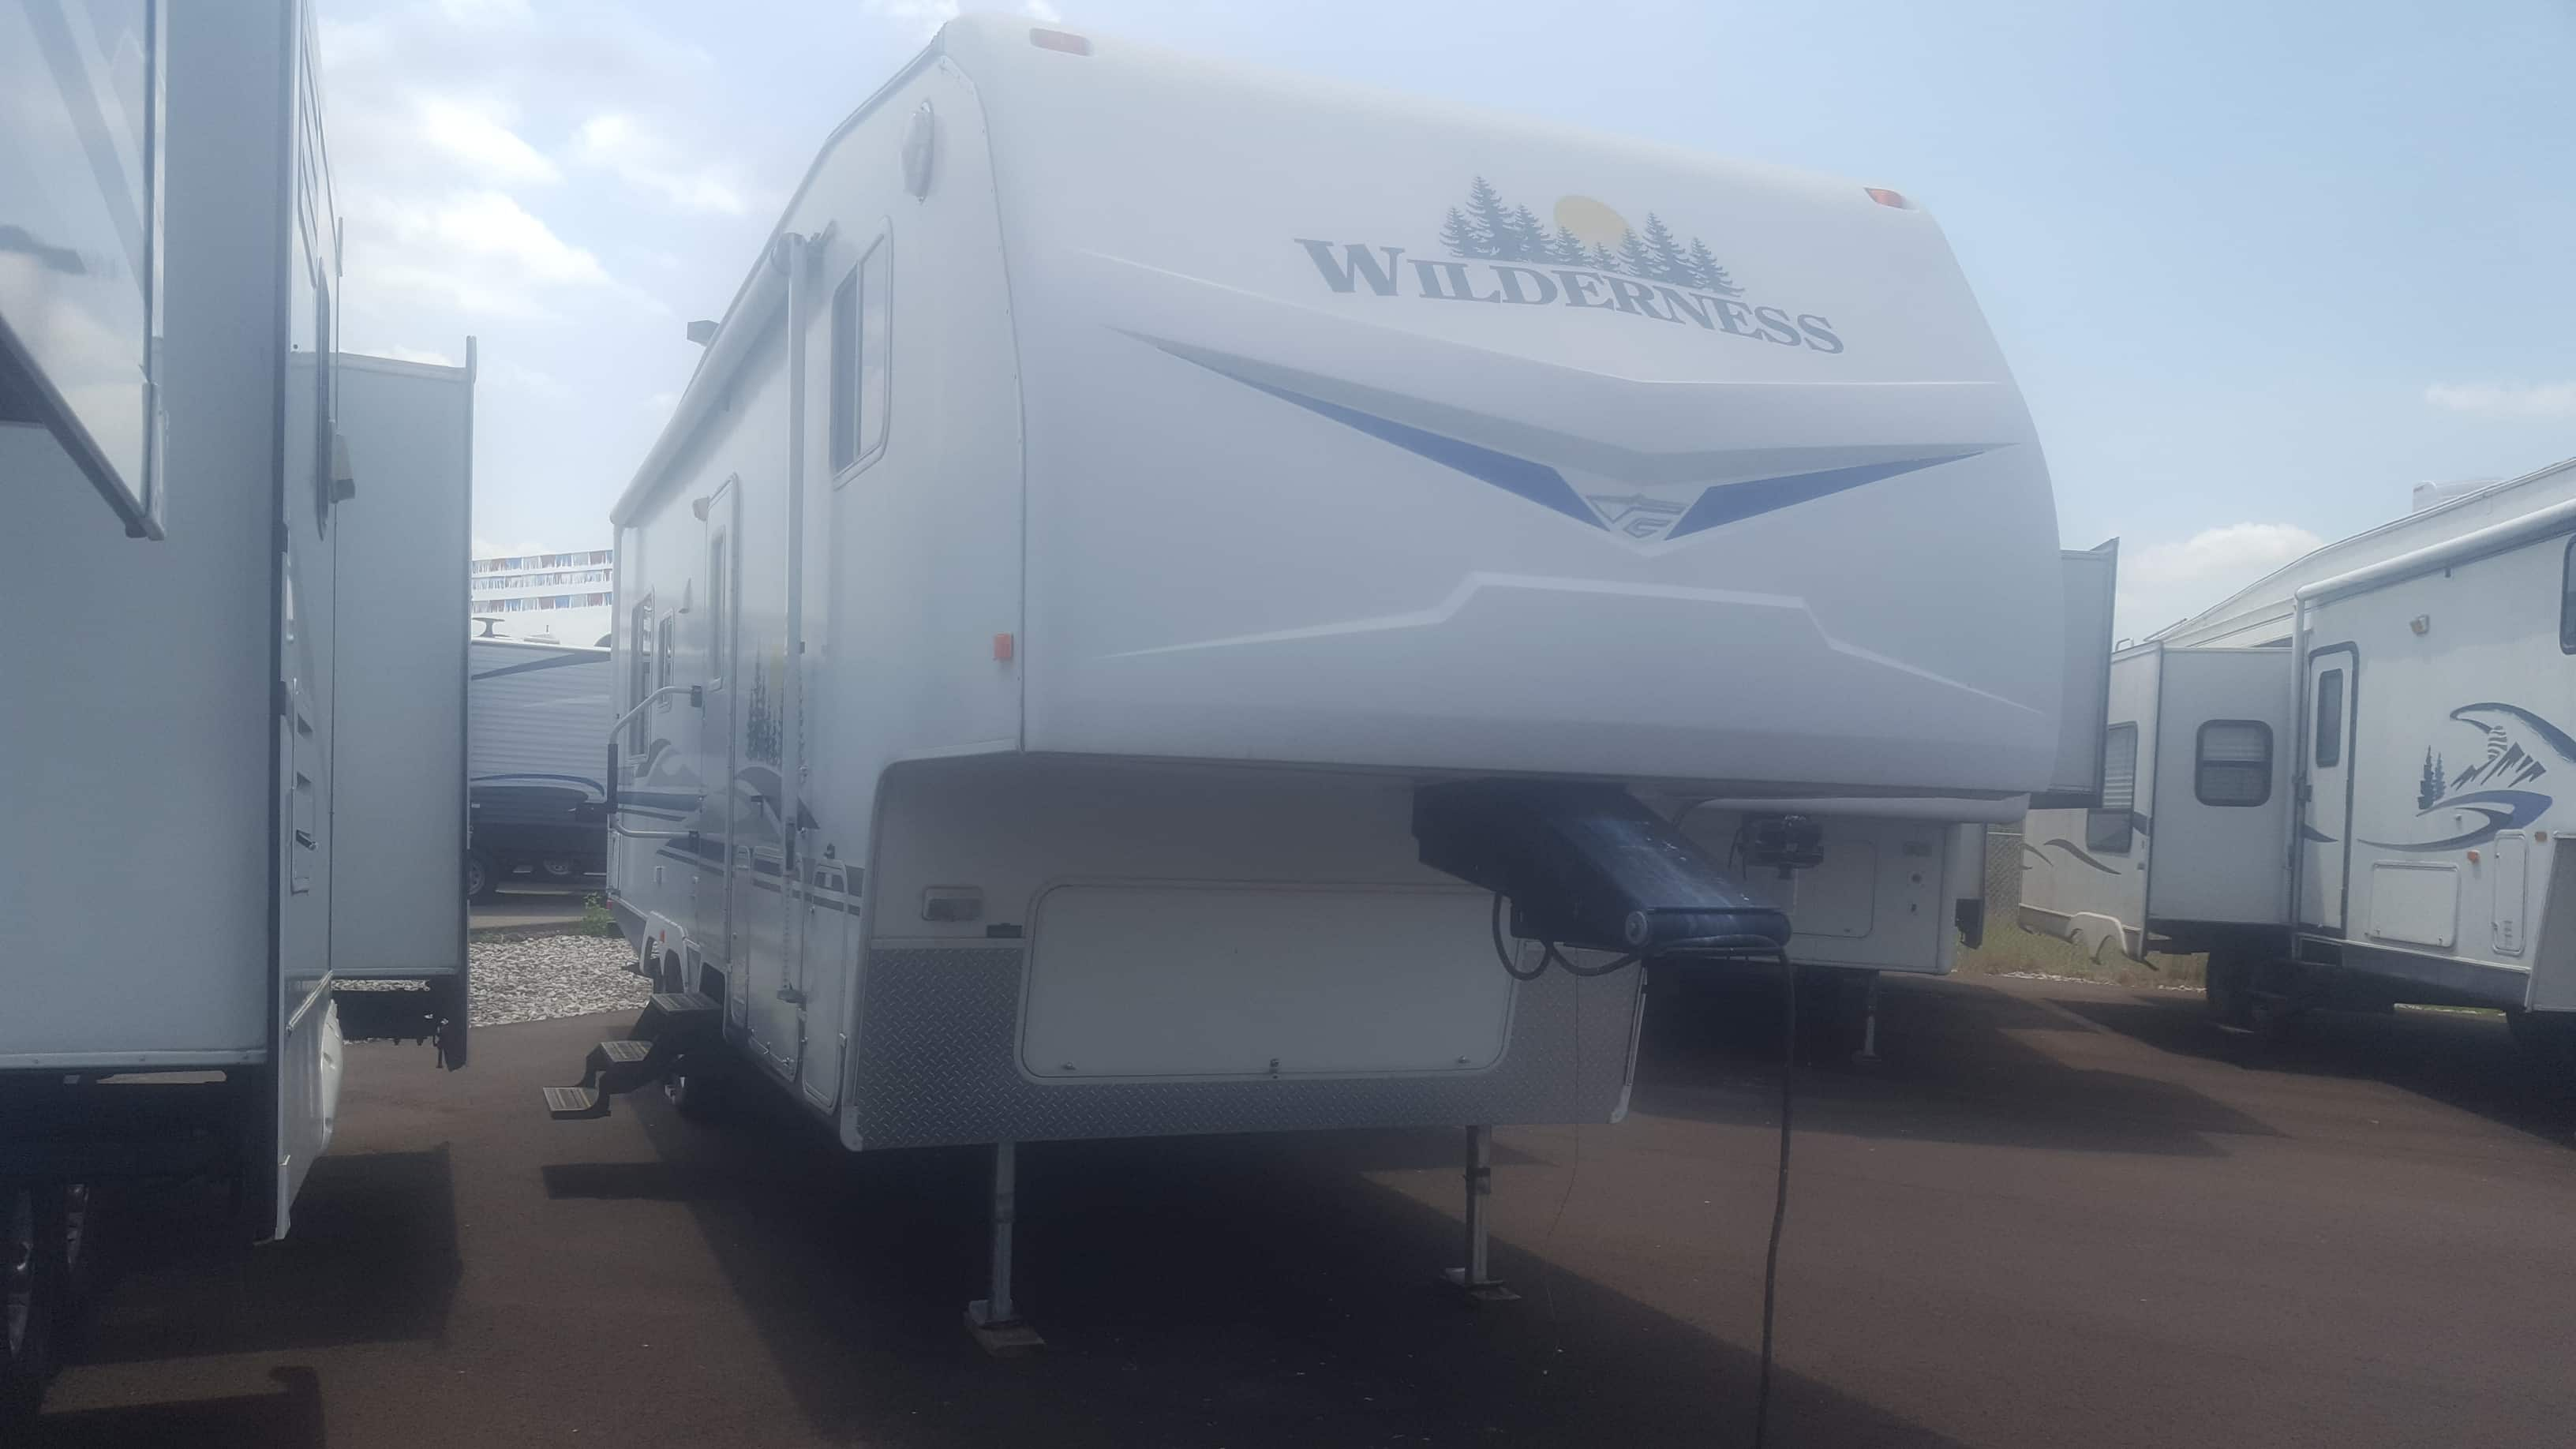 USED 2007 Fleetwood Wilderness 295RLS - American RV